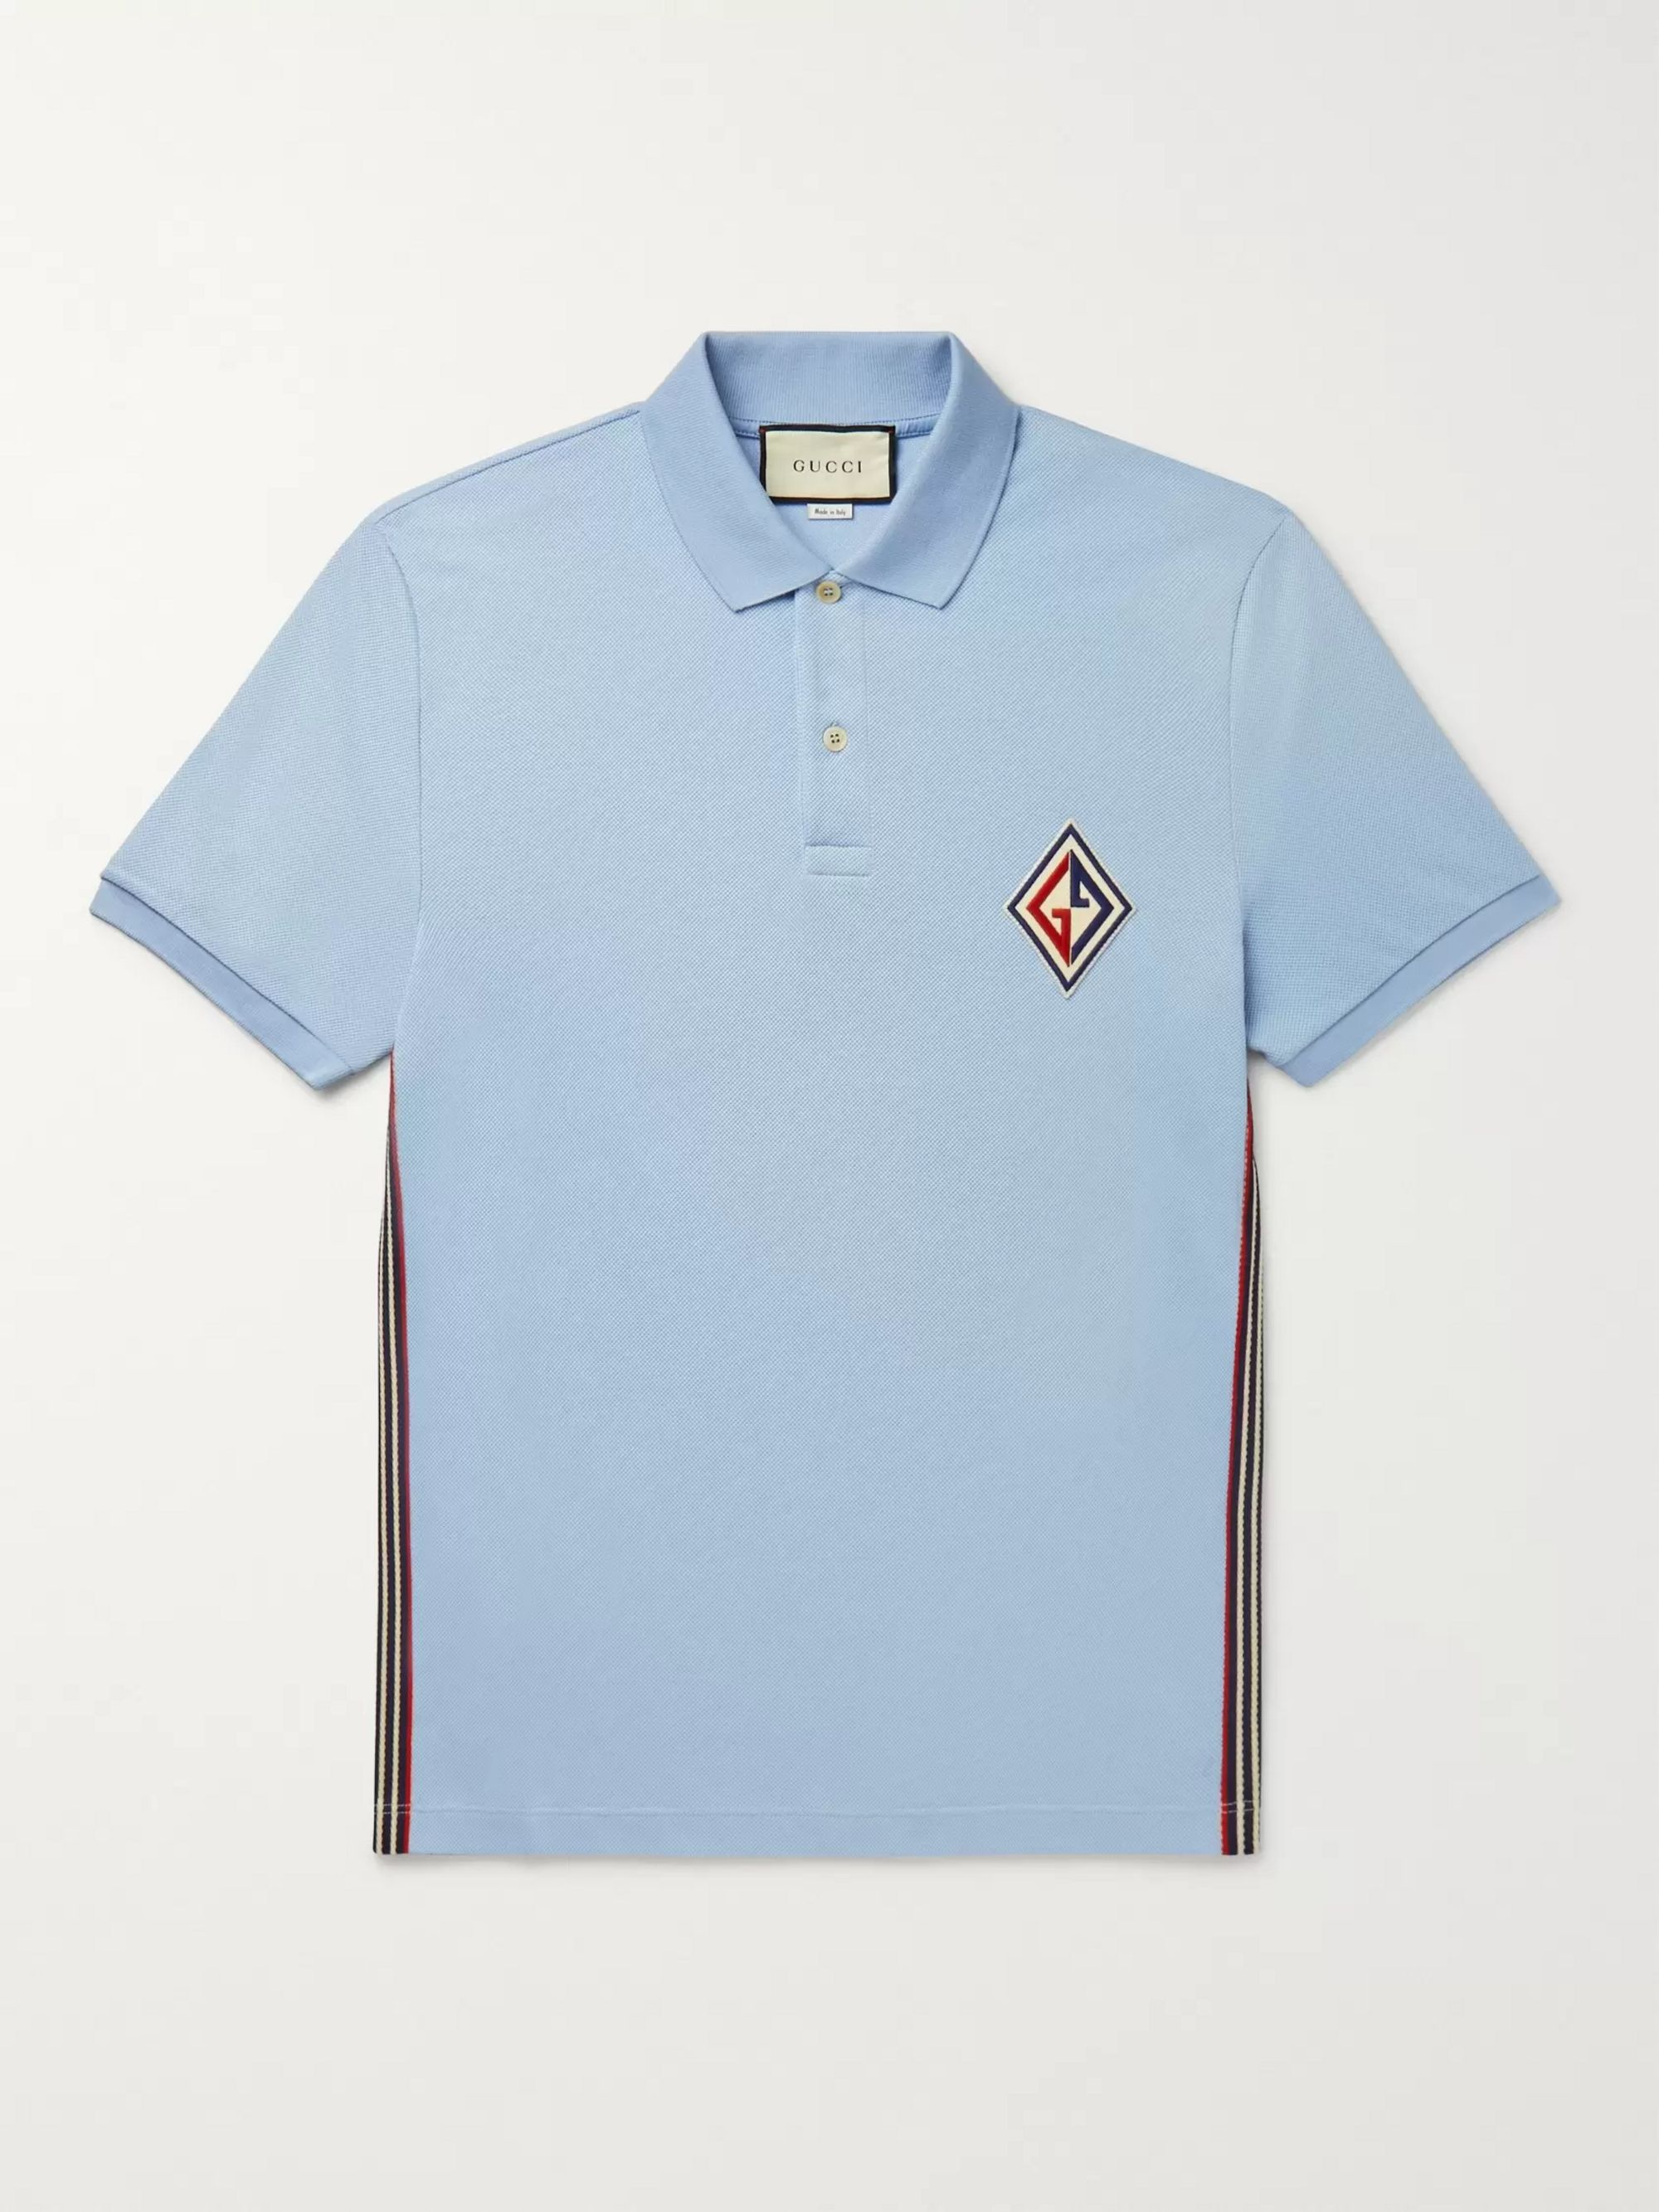 Gucci Logo-Appliquéd Striped Cotton-Blend Piqué Polo Shirt